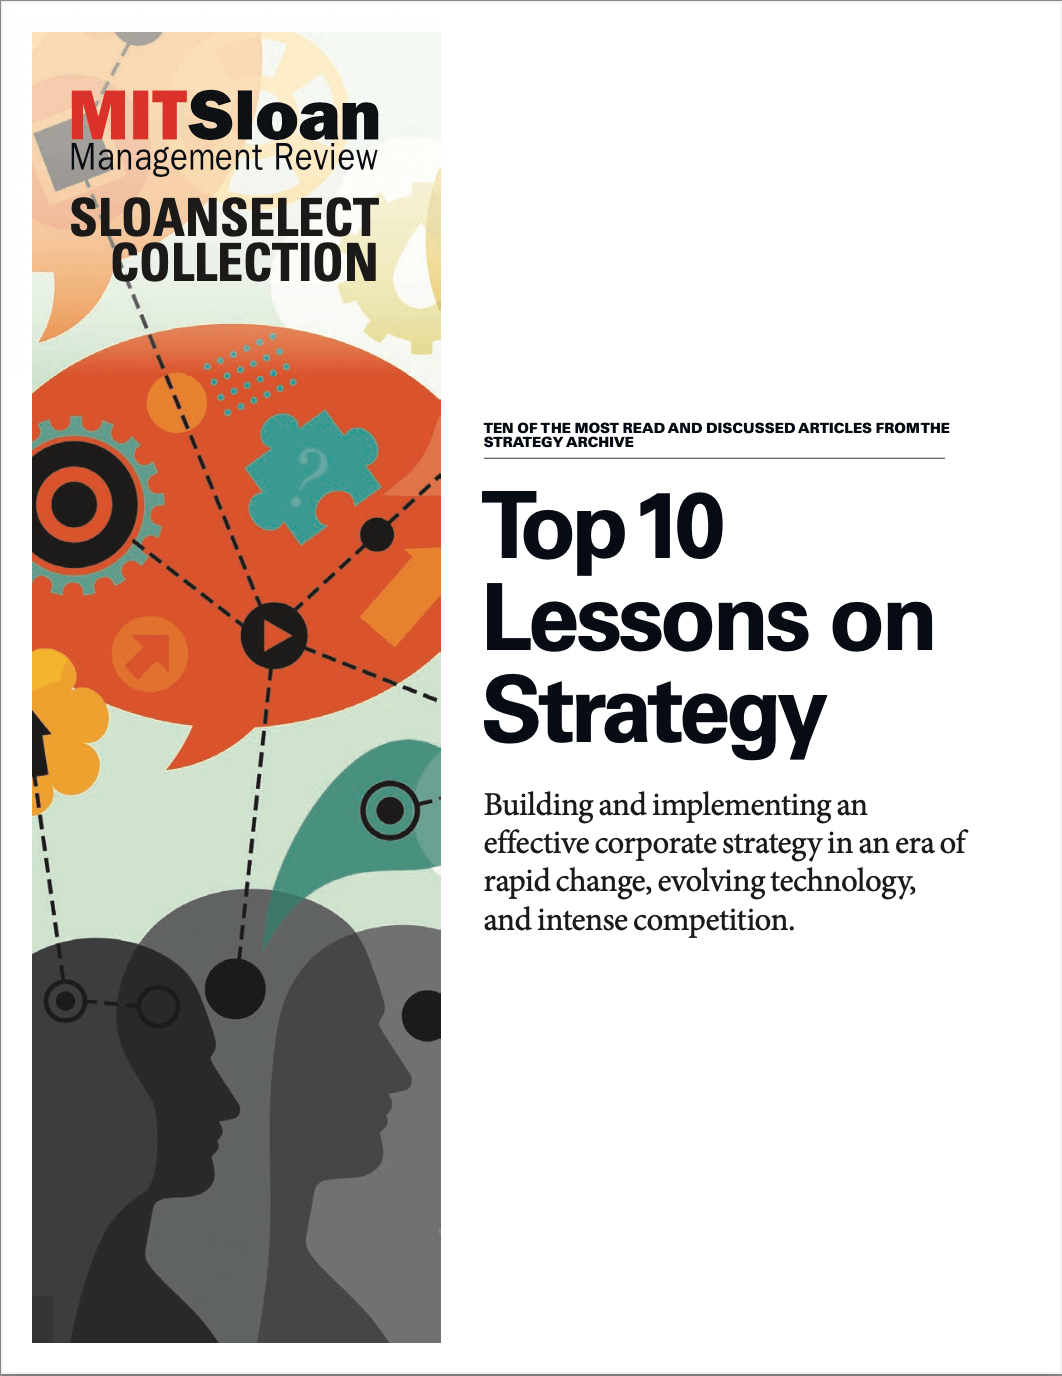 Top 10 lessons on Strategy